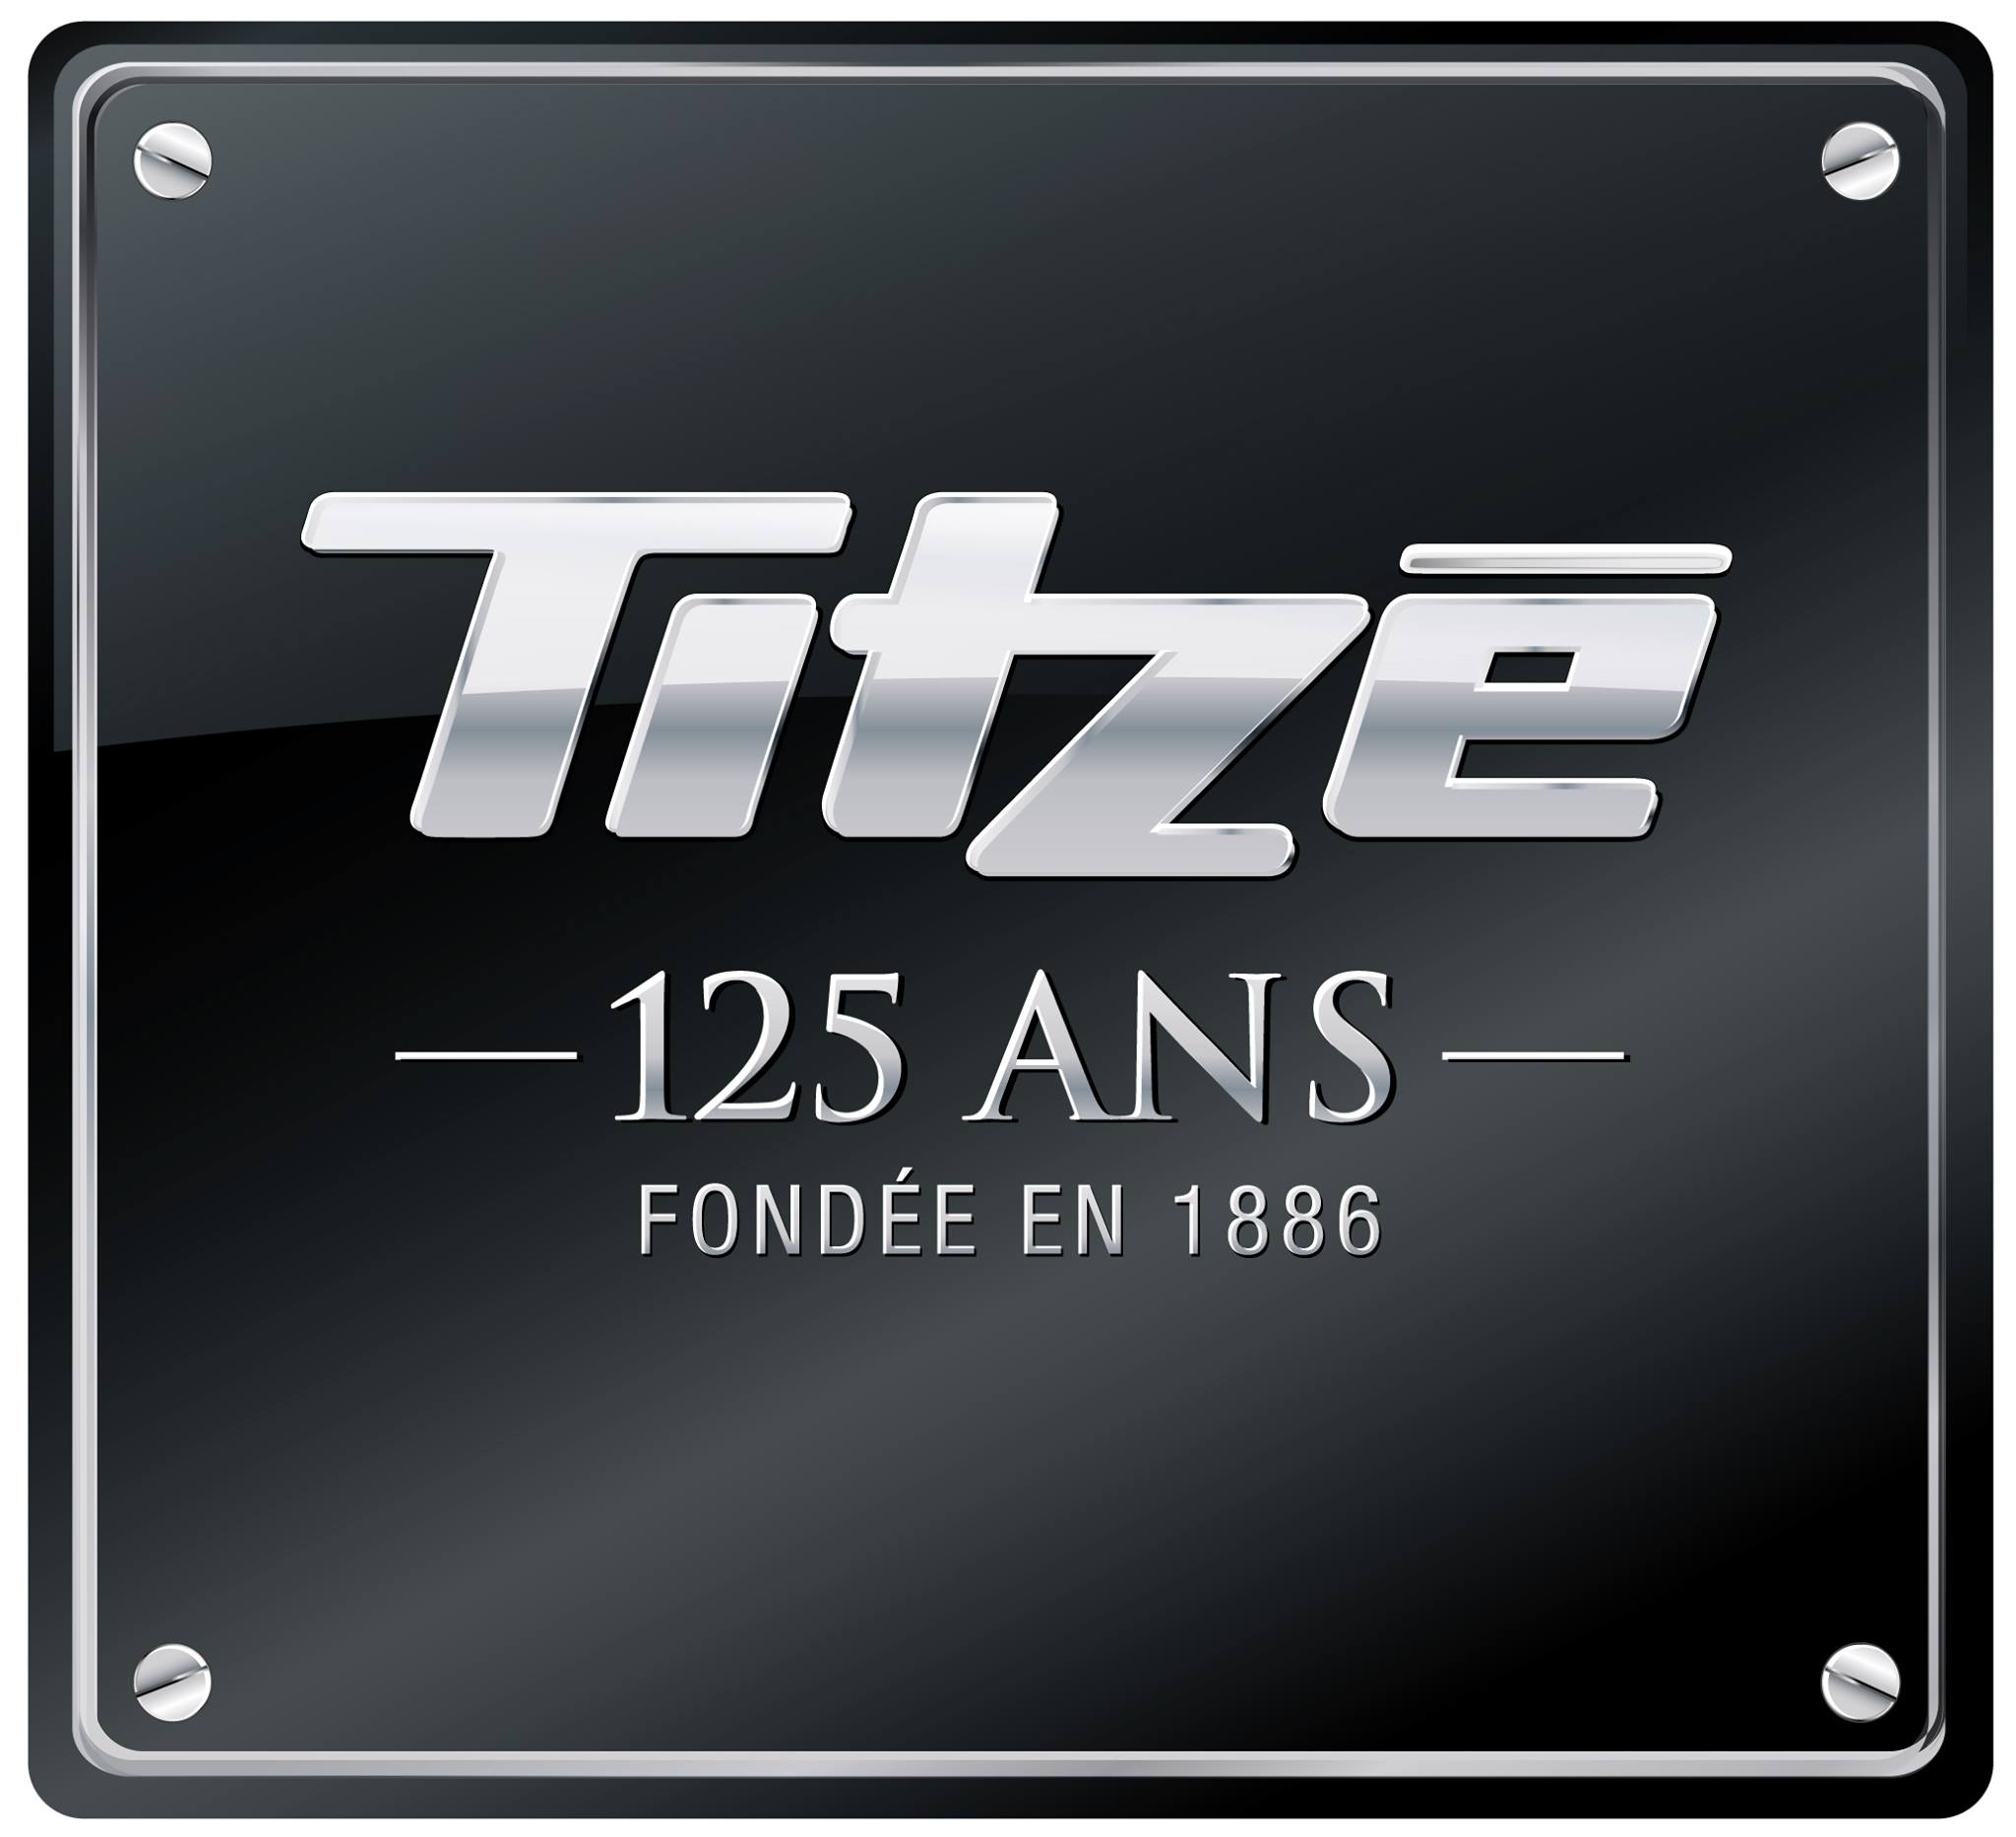 a7613c7ec5f7bd Titzé Horlogerie-Bijouterie in Sion - View address   opening hours on  local.ch